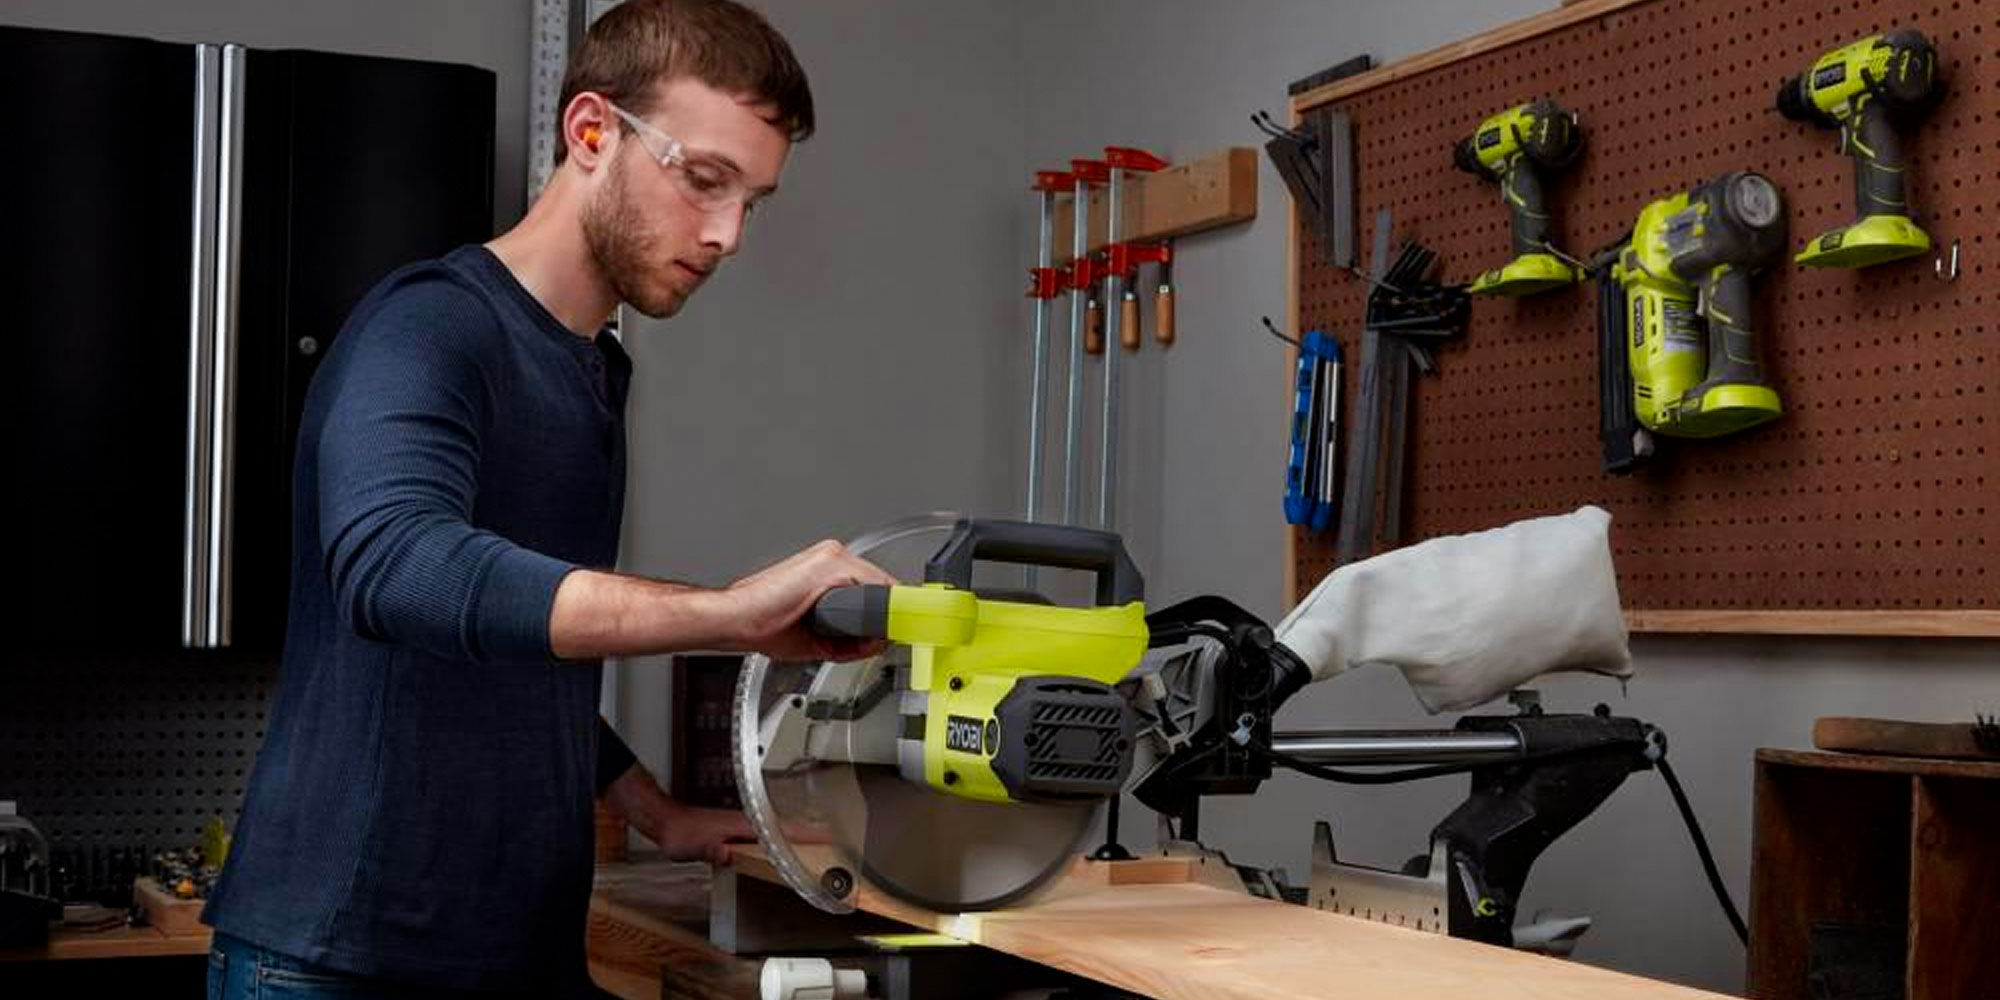 Ryobi S 10 Inch Sliding Compound Miter Saw Drops To 139 Reg 219 9to5toys